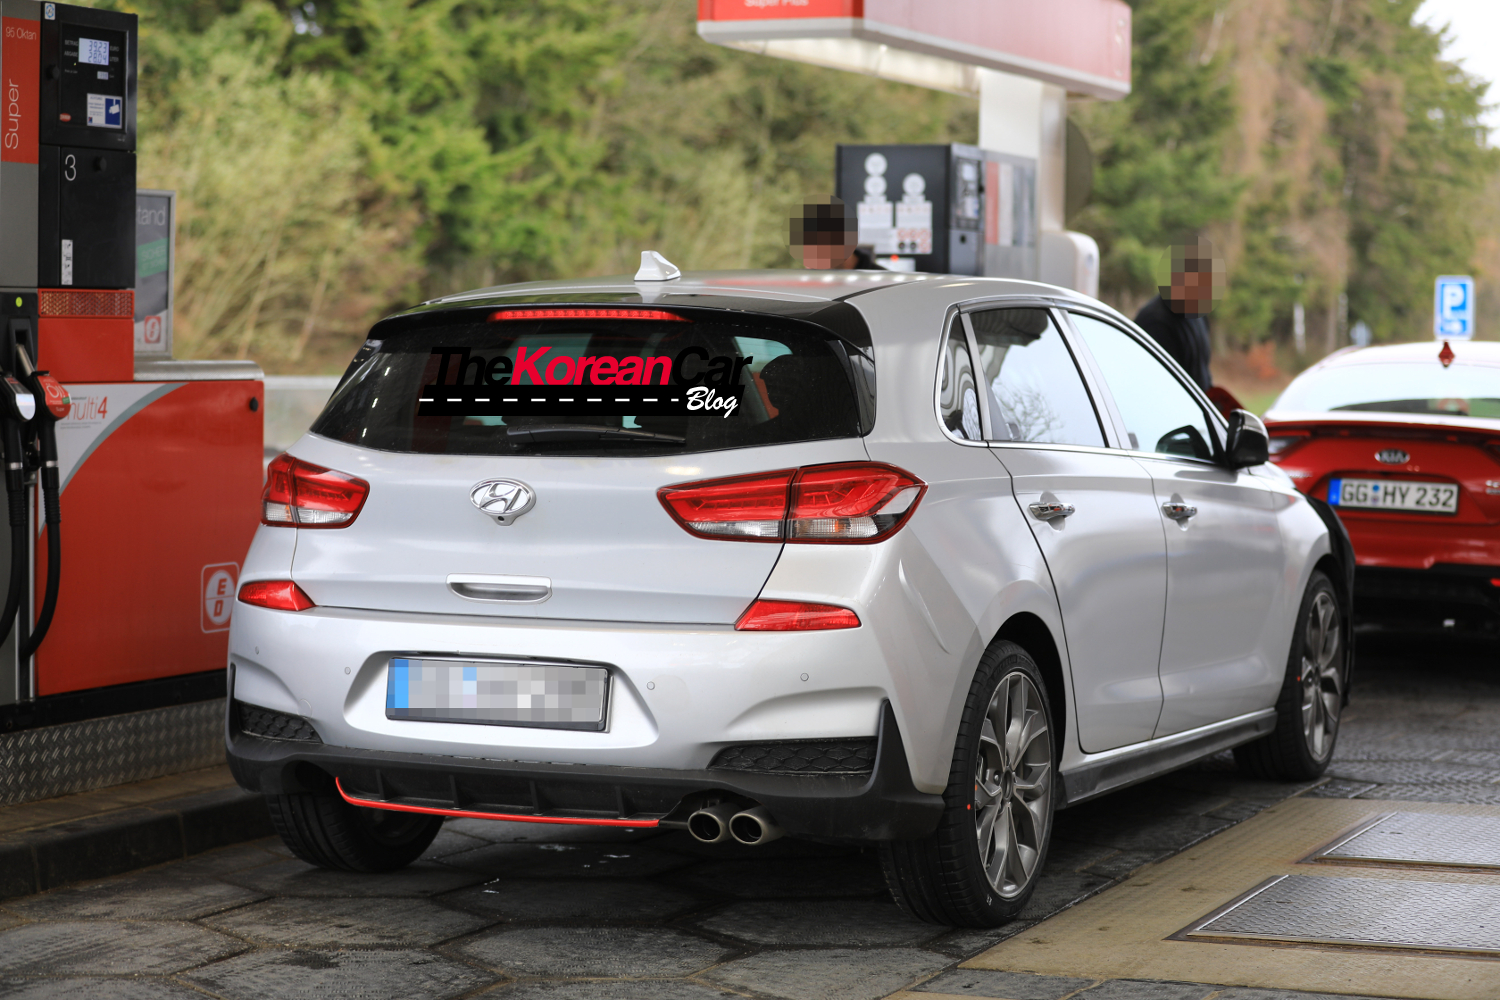 Hyundai Spy Shots >> Hyundai i30 N-line Package Spied - Korean Car Blog